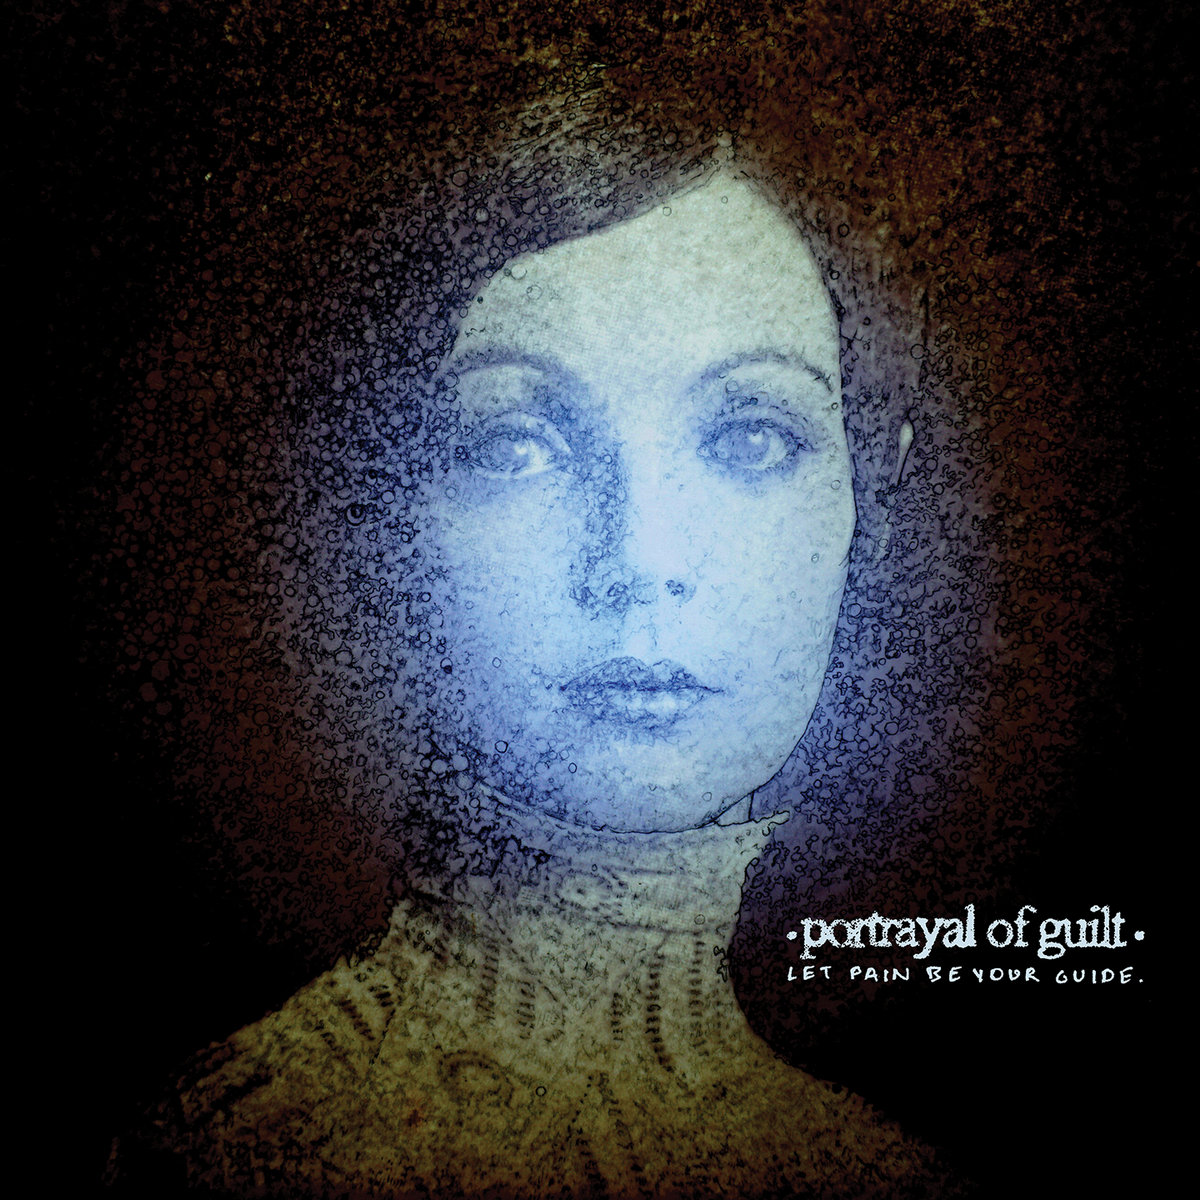 Let Pain Be Your Guide Portrayal Of Guilt